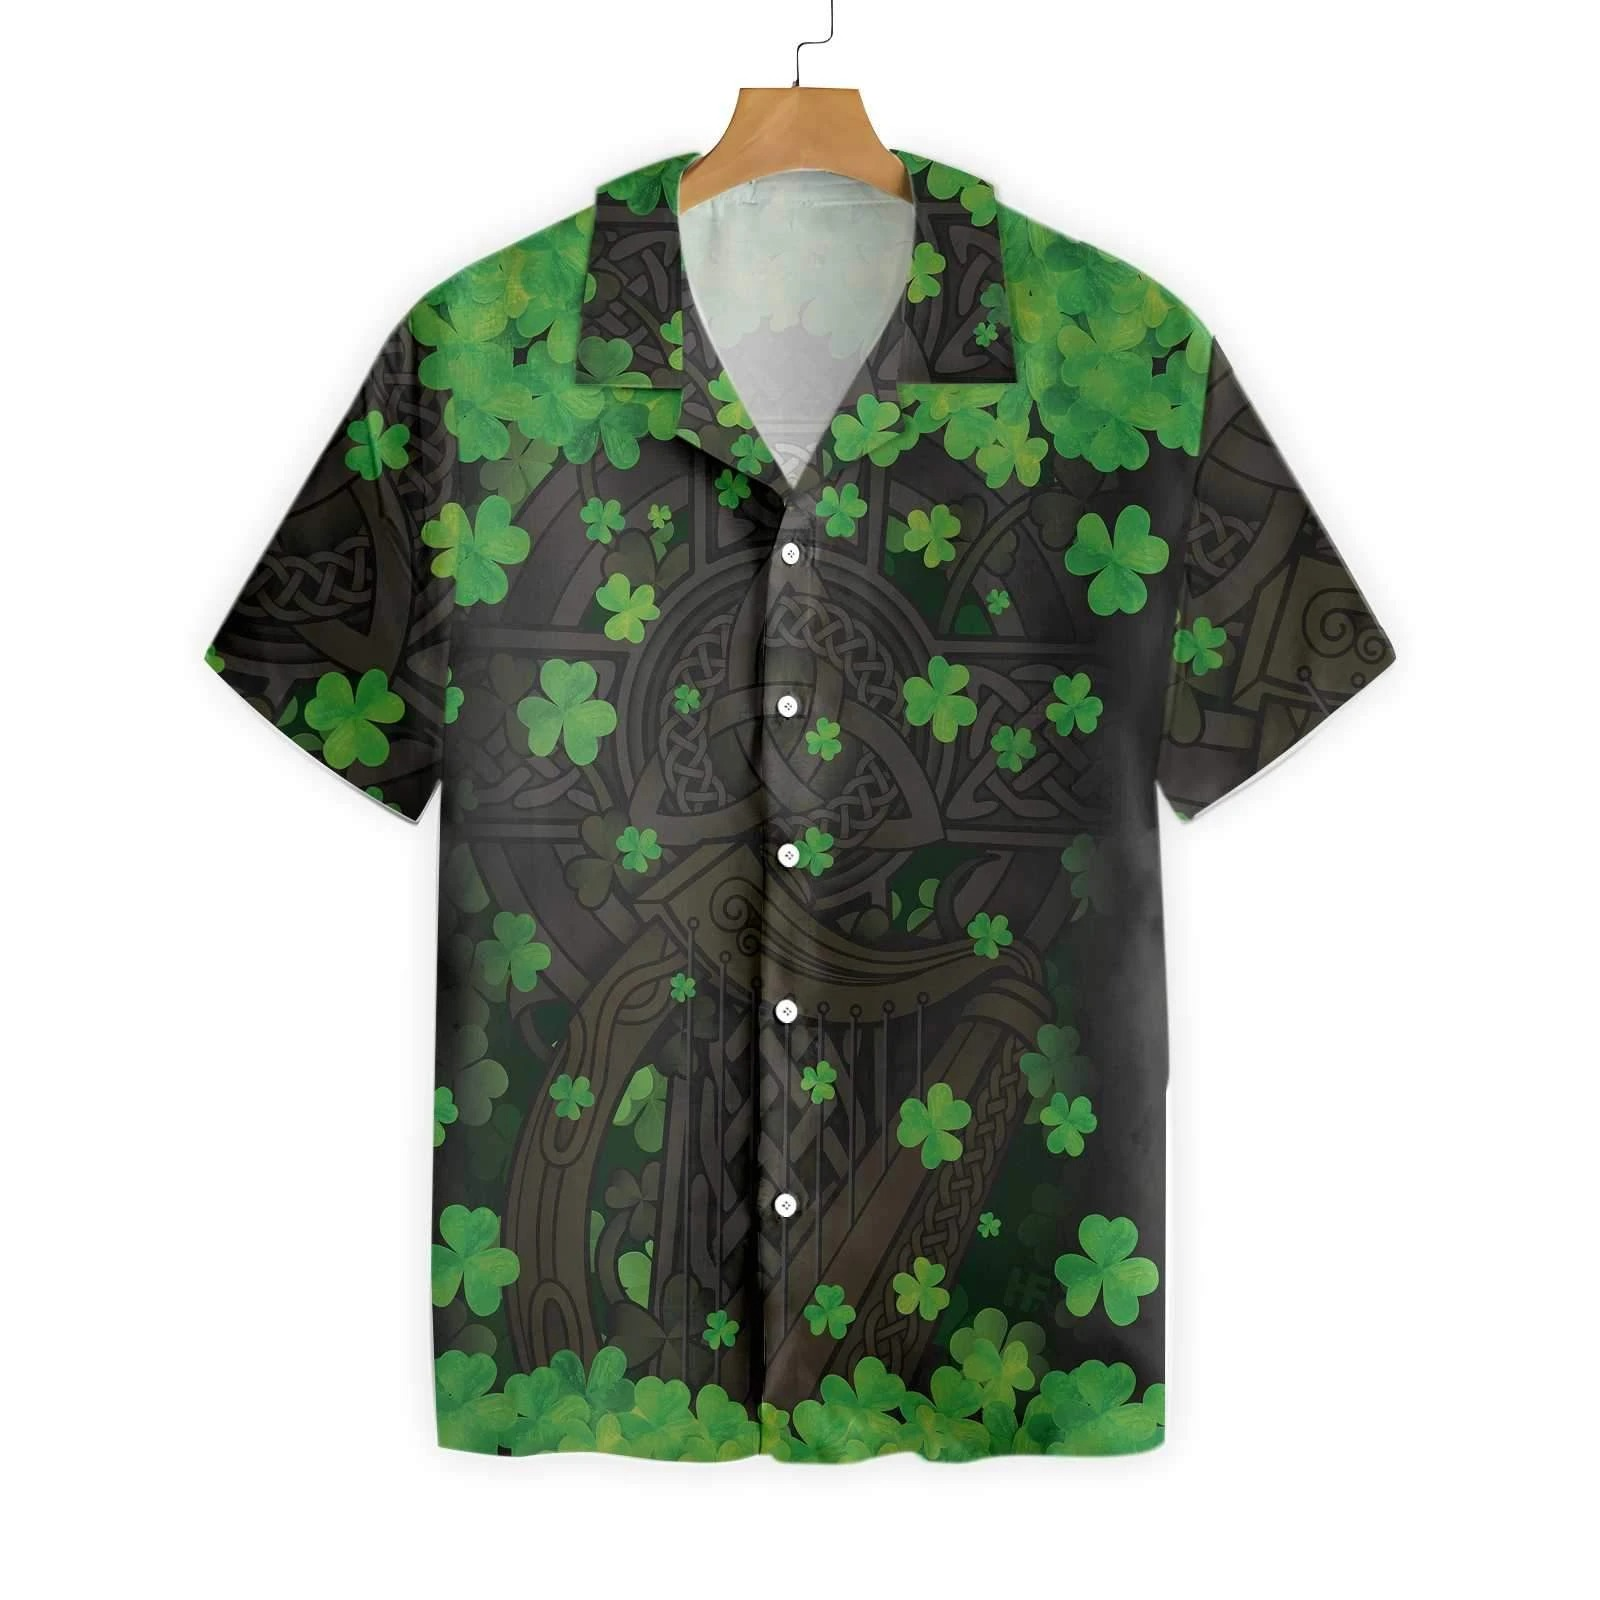 The Celtic Cross Harp Irish Hawaiian shirt